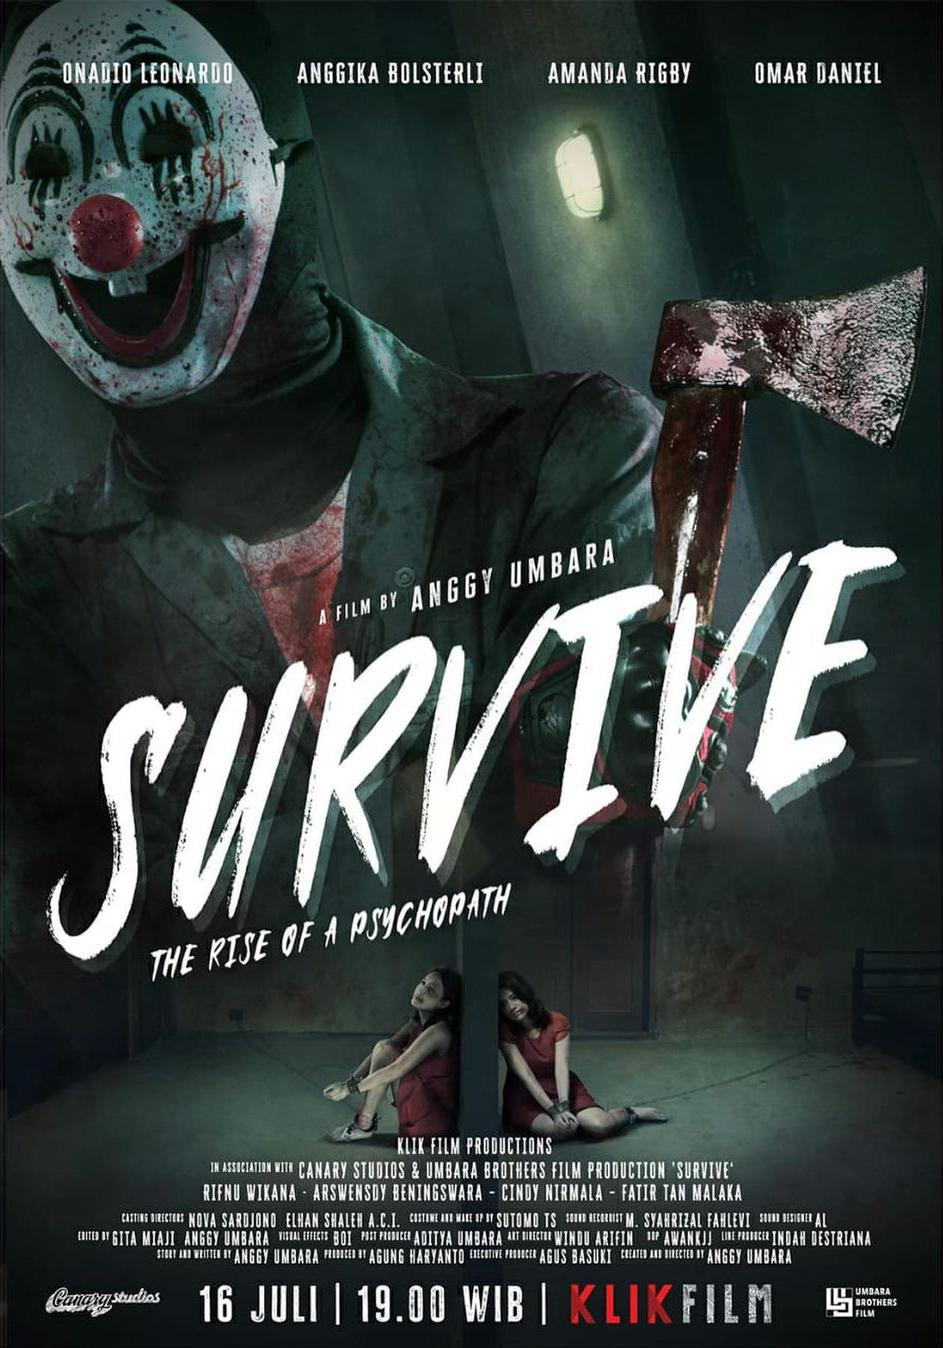 Download Survive (2021) Tamil Dubbed (Voice Over) & English [Dual Audio] WebRip 720p [1XBET] Full Movie Online On 1xcinema.com